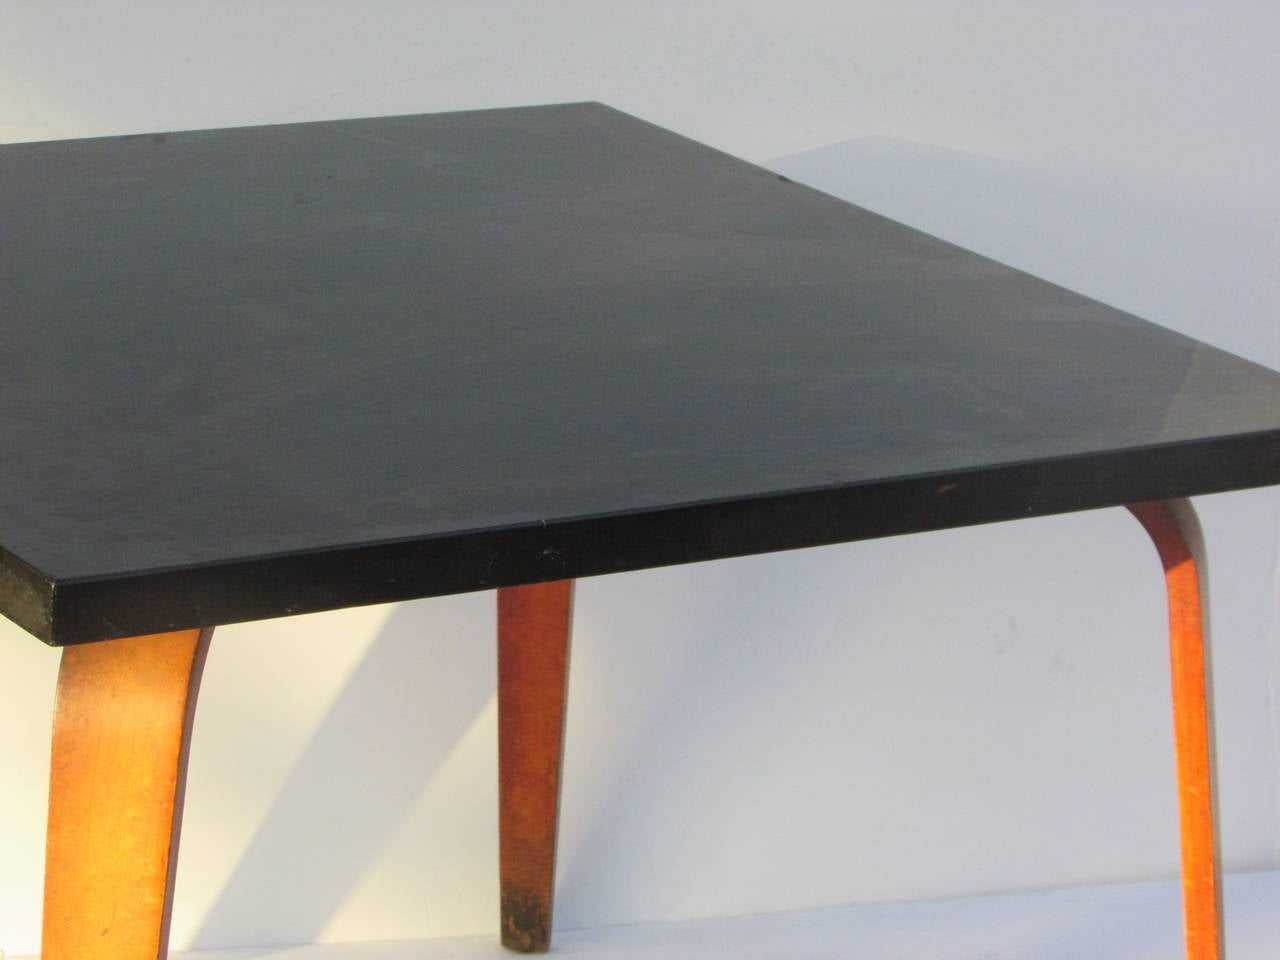 Thonet bentwood side table at 1stdibs thonet bentwood side table 3 geotapseo Gallery